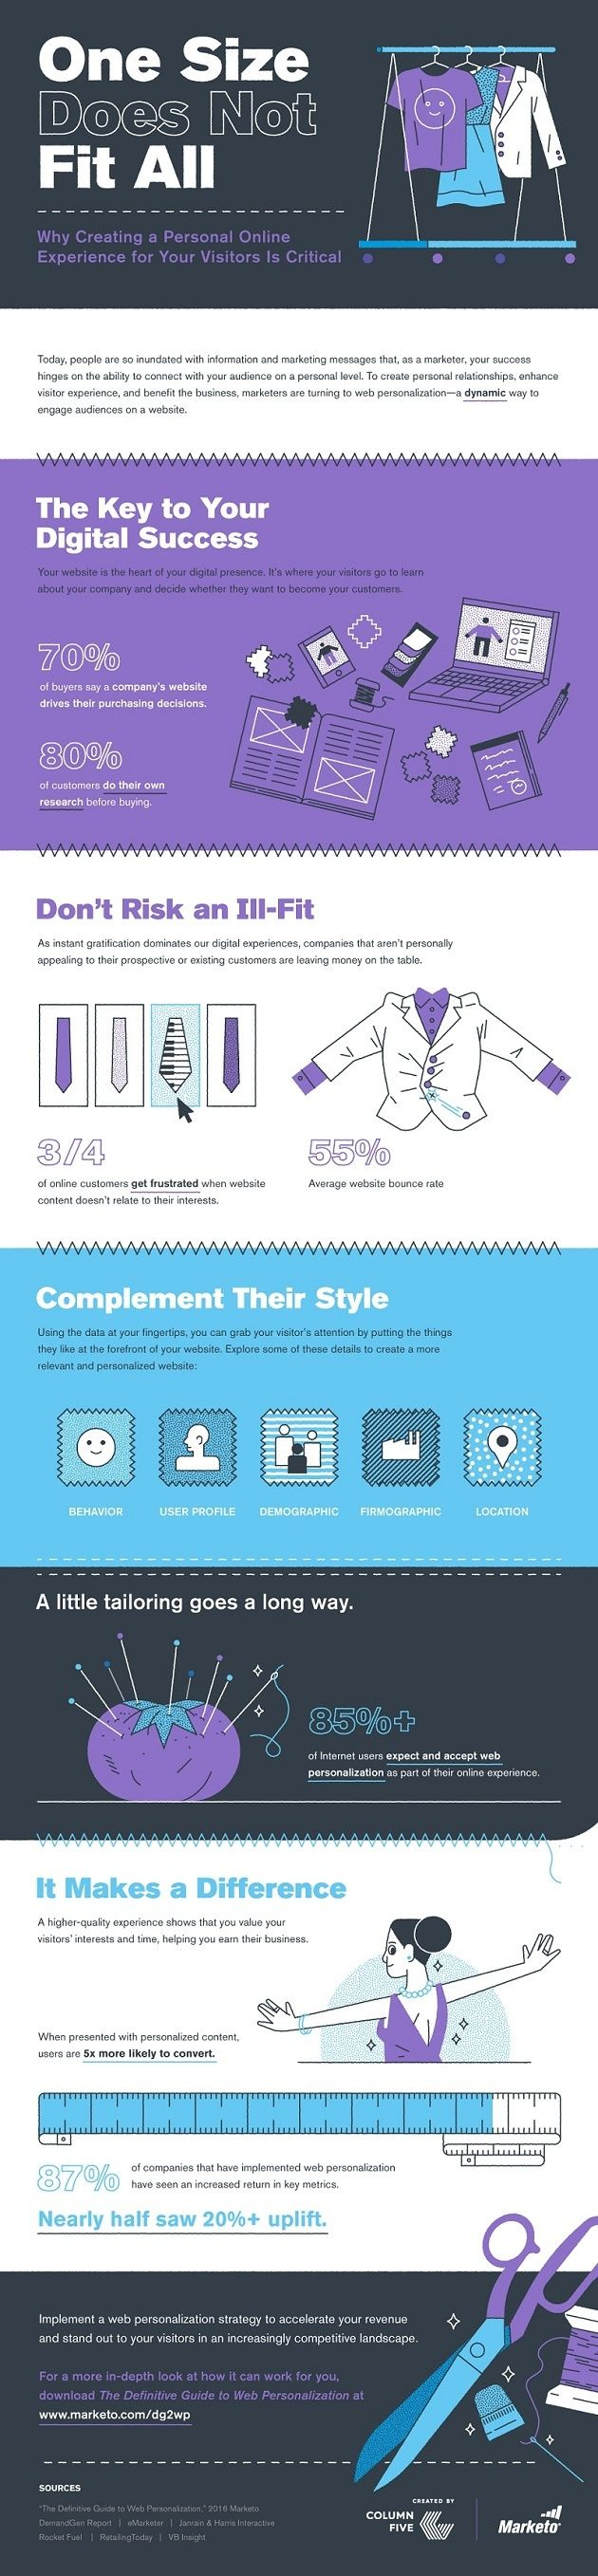 160723-one-size-fits-all-personalization-infographic-preview.jpg 630×2.715 pixels